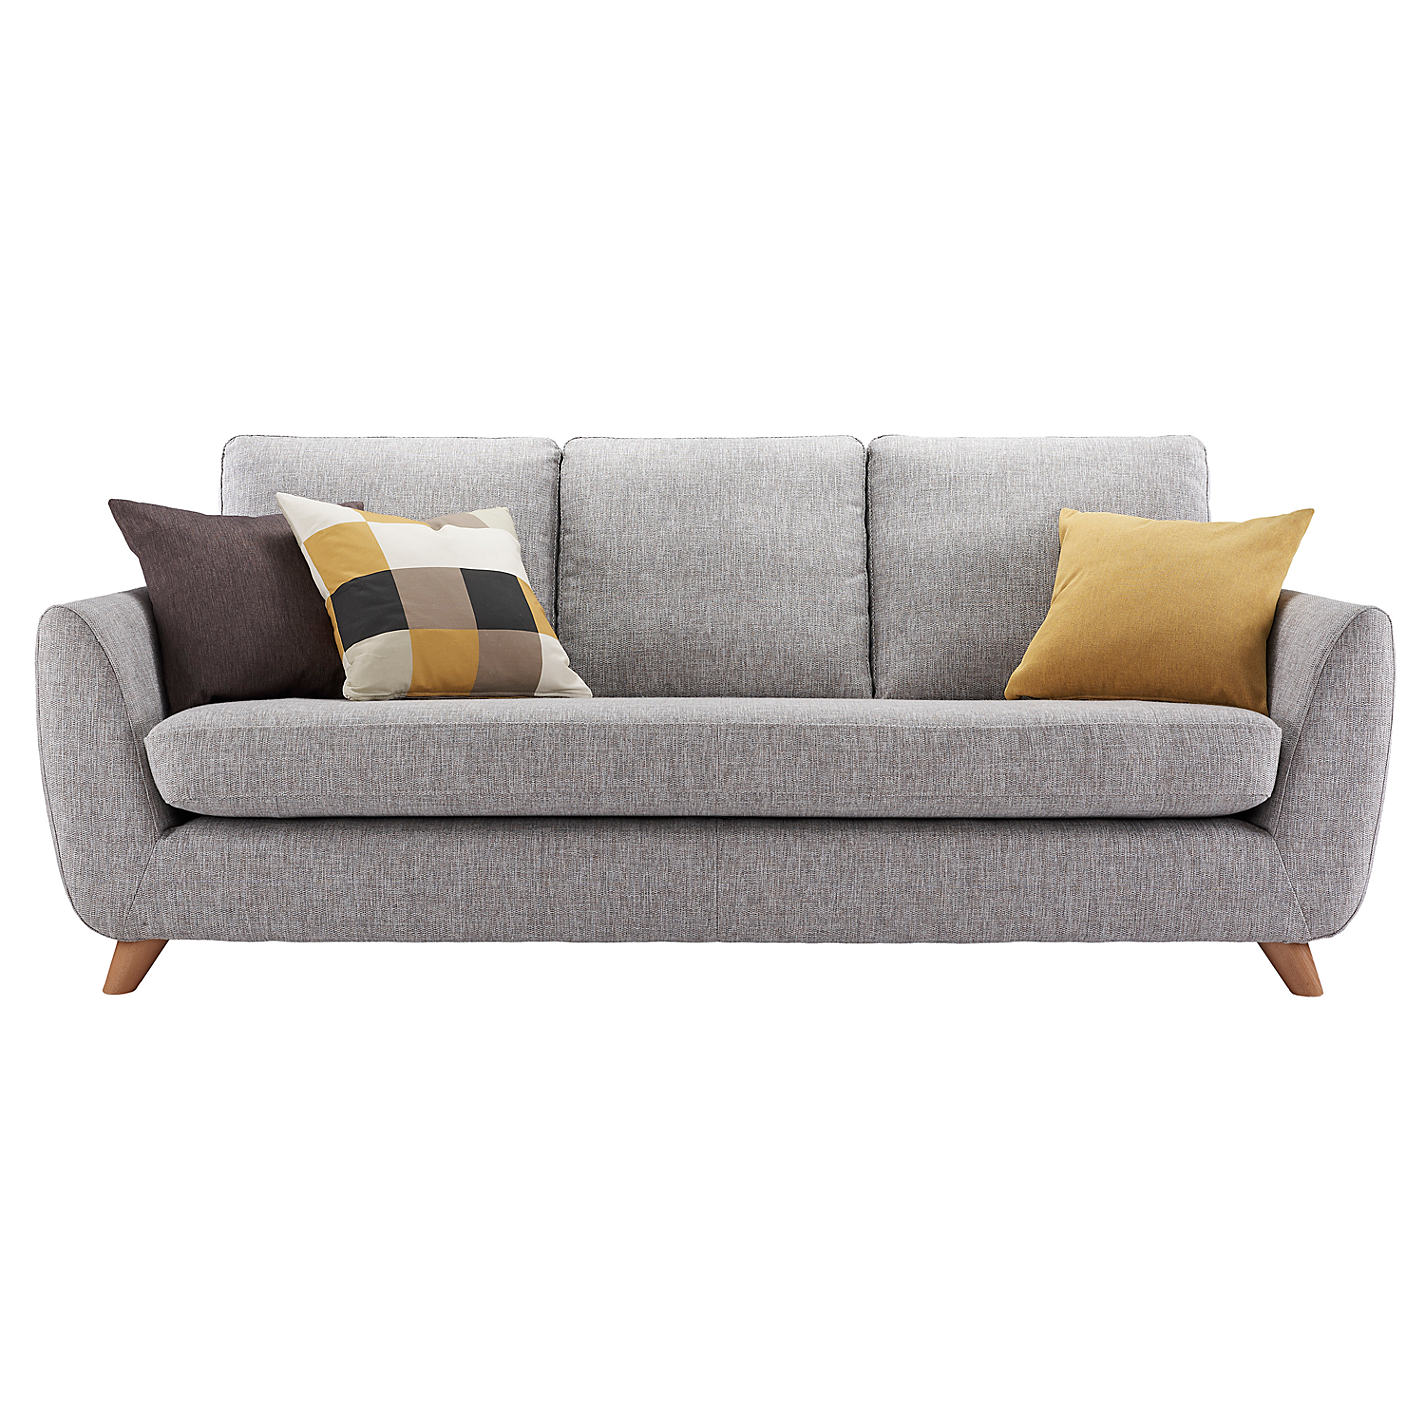 Buy G Plan Vintage The Sixty Seven 3 Seater Sofa Marl Grey